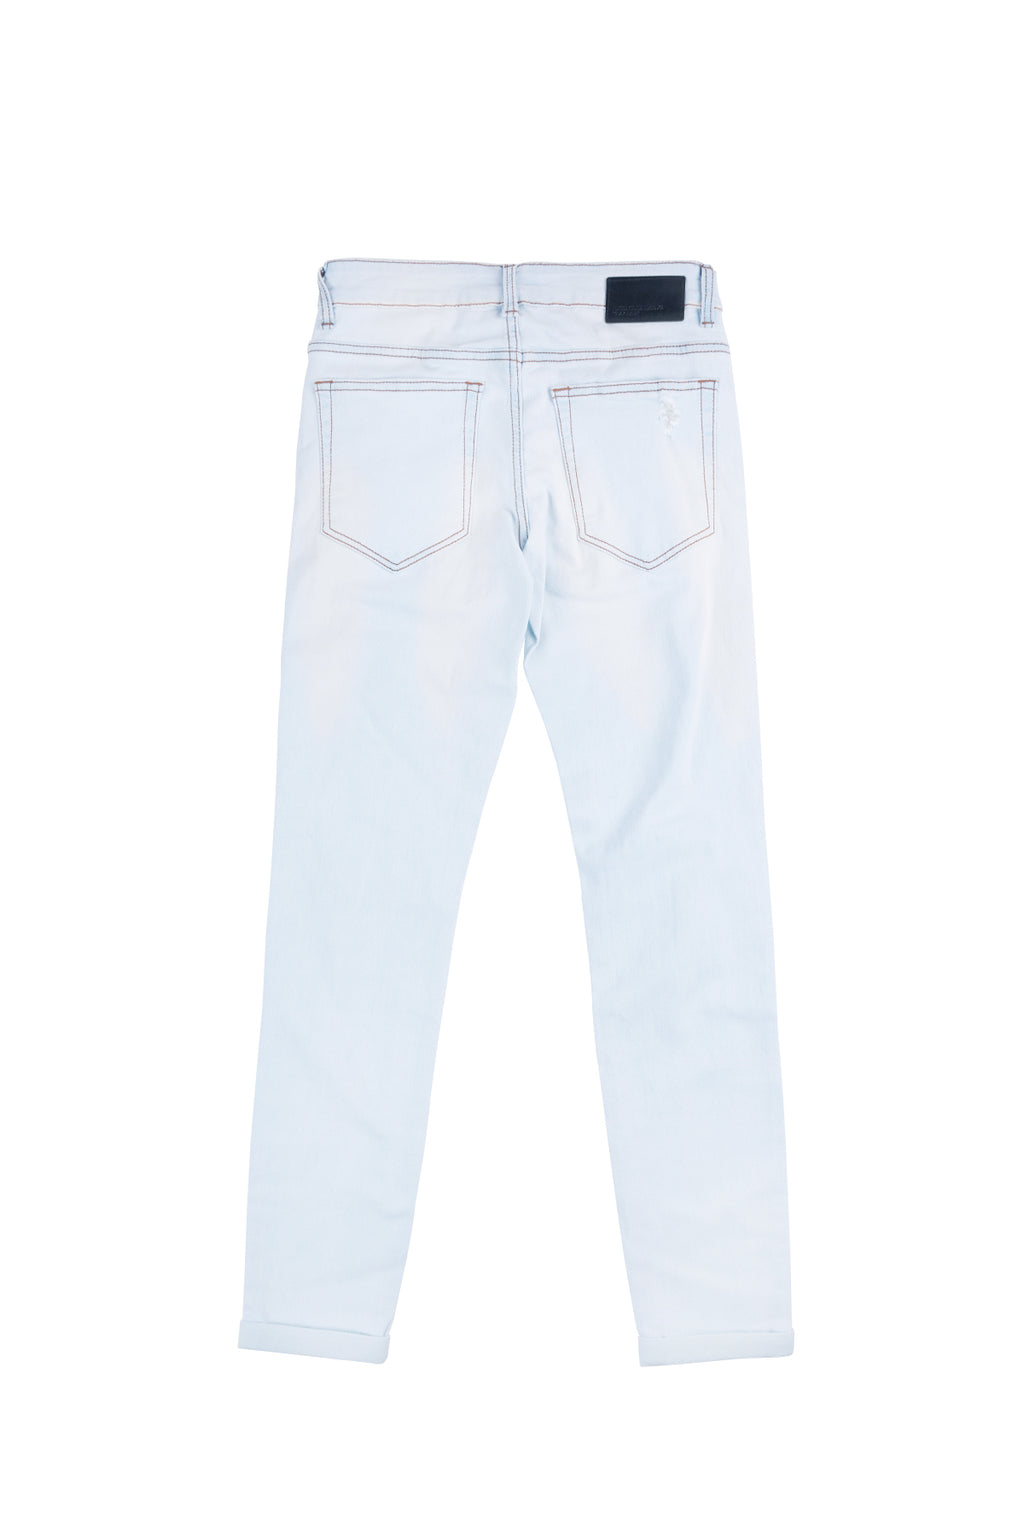 SLIM-FIT HEAVY WASHED RIPPED JEANS | LIGHT BLUE - 58